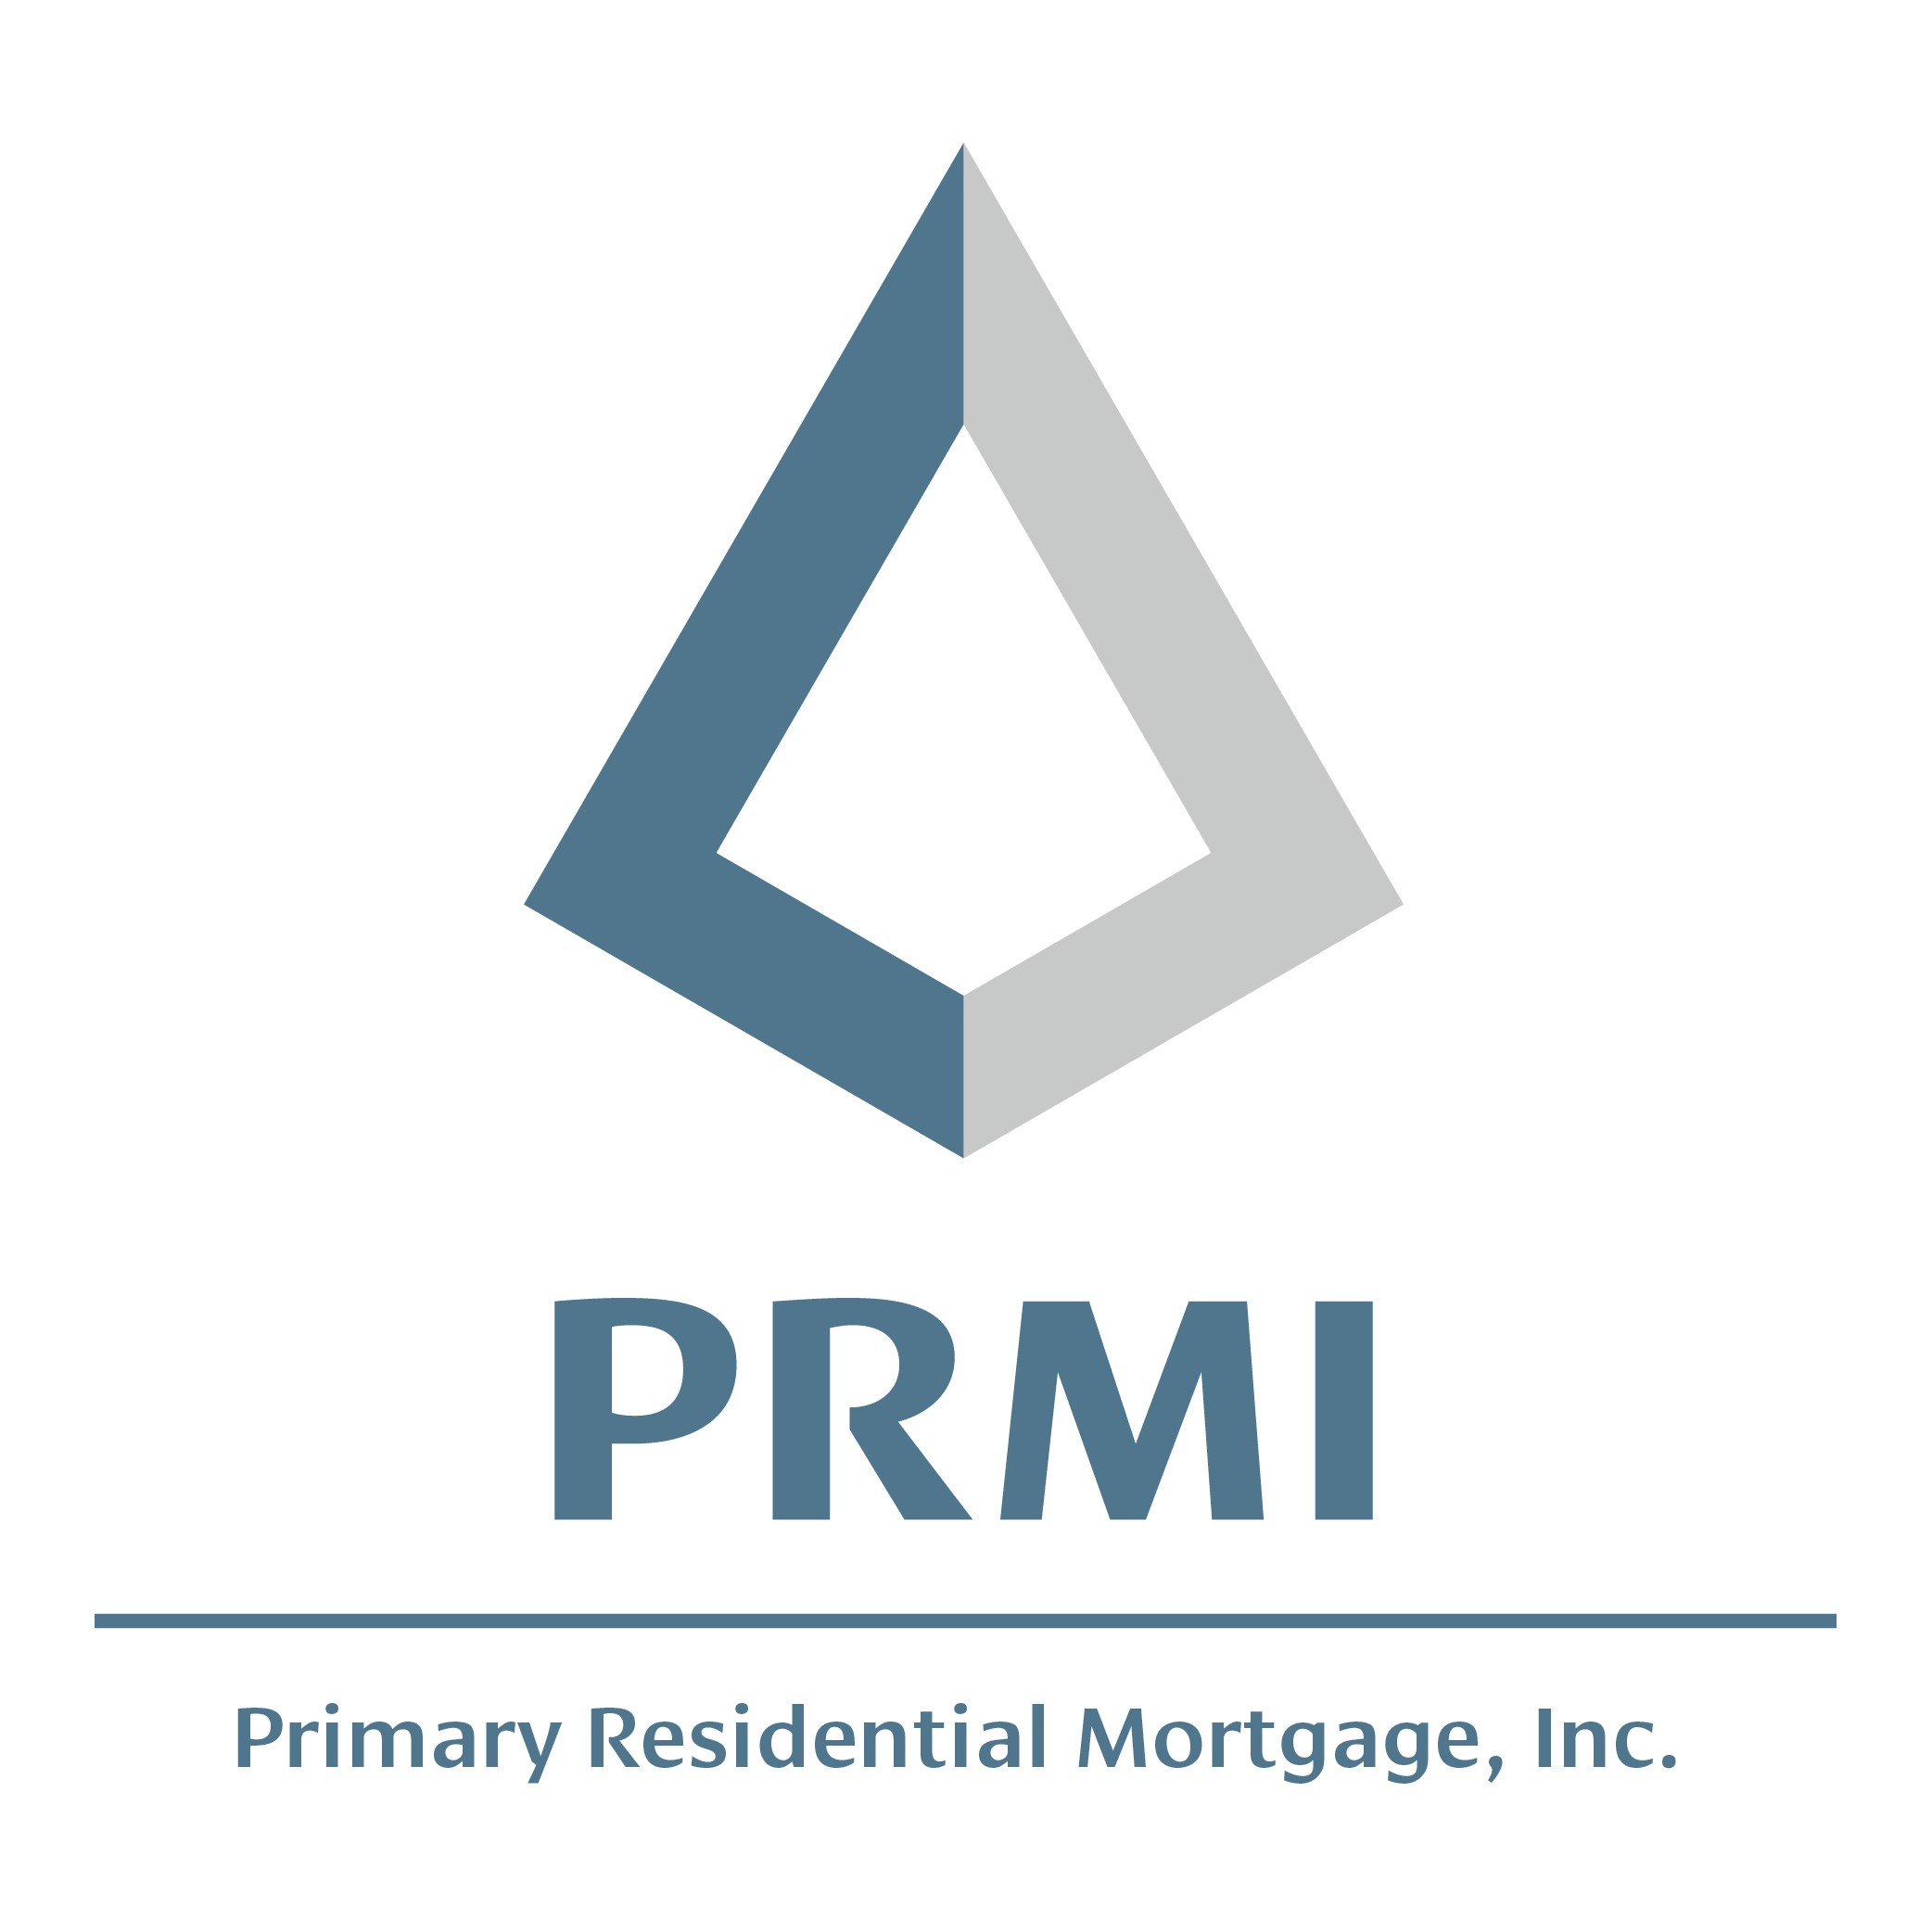 Primary Residential Mortgage, Inc. - Jacksonville, FL 32256 - (904)730-5603 | ShowMeLocal.com